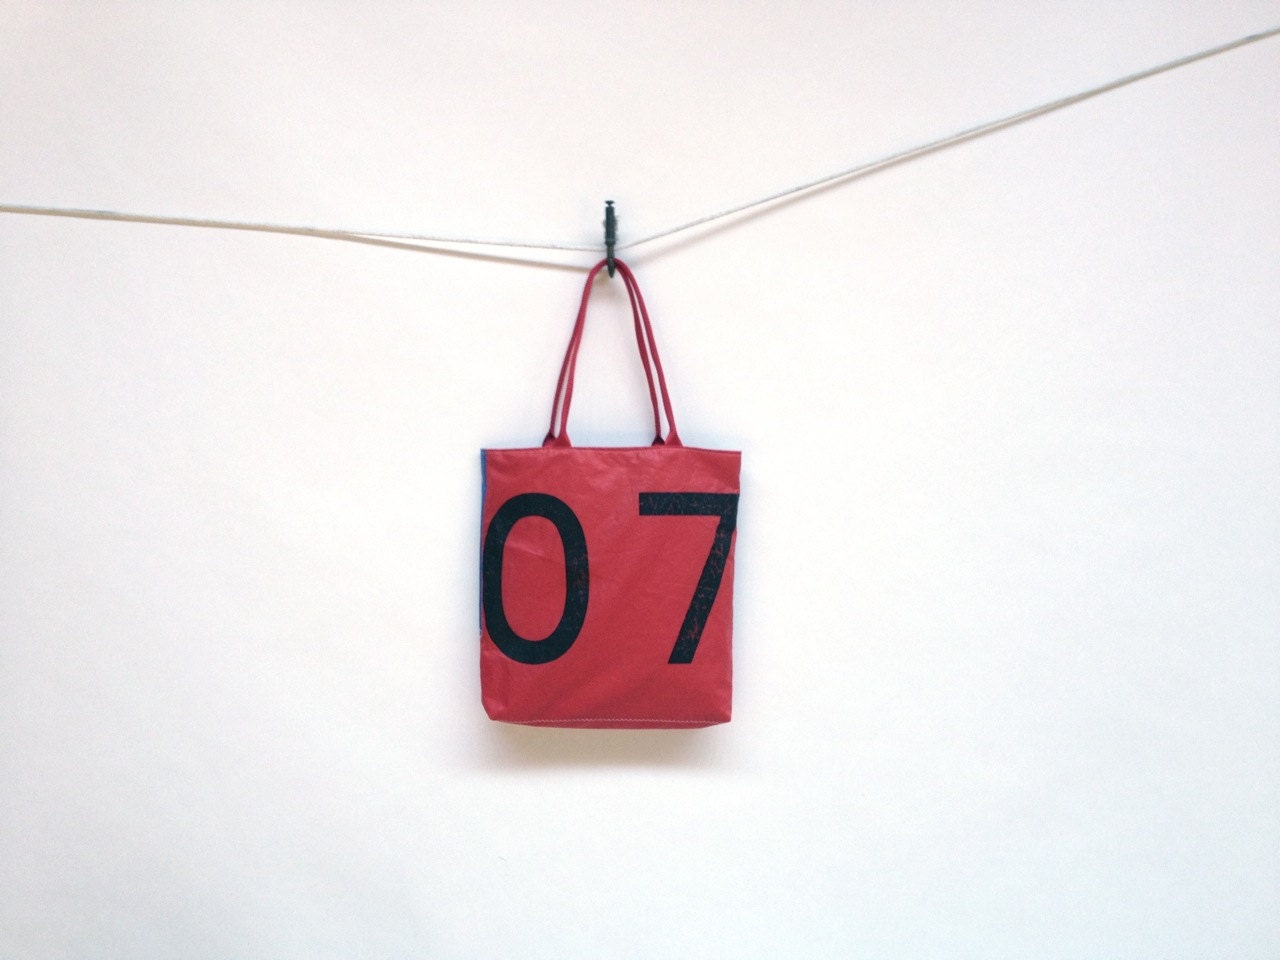 Tote Bags Made From Sails